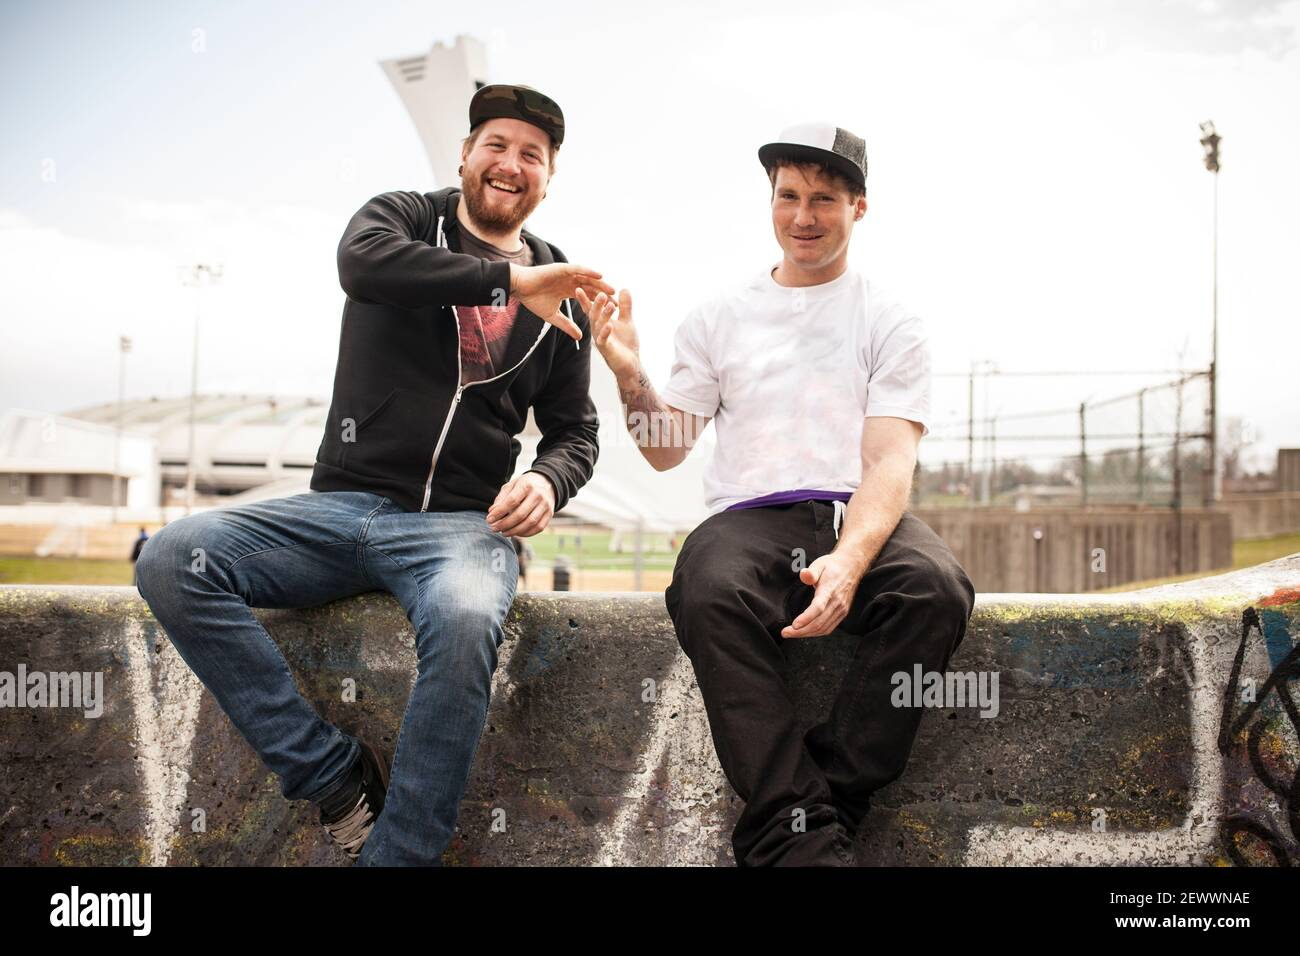 Two buddies bmxing and giving eachother a handshake Stock Photo